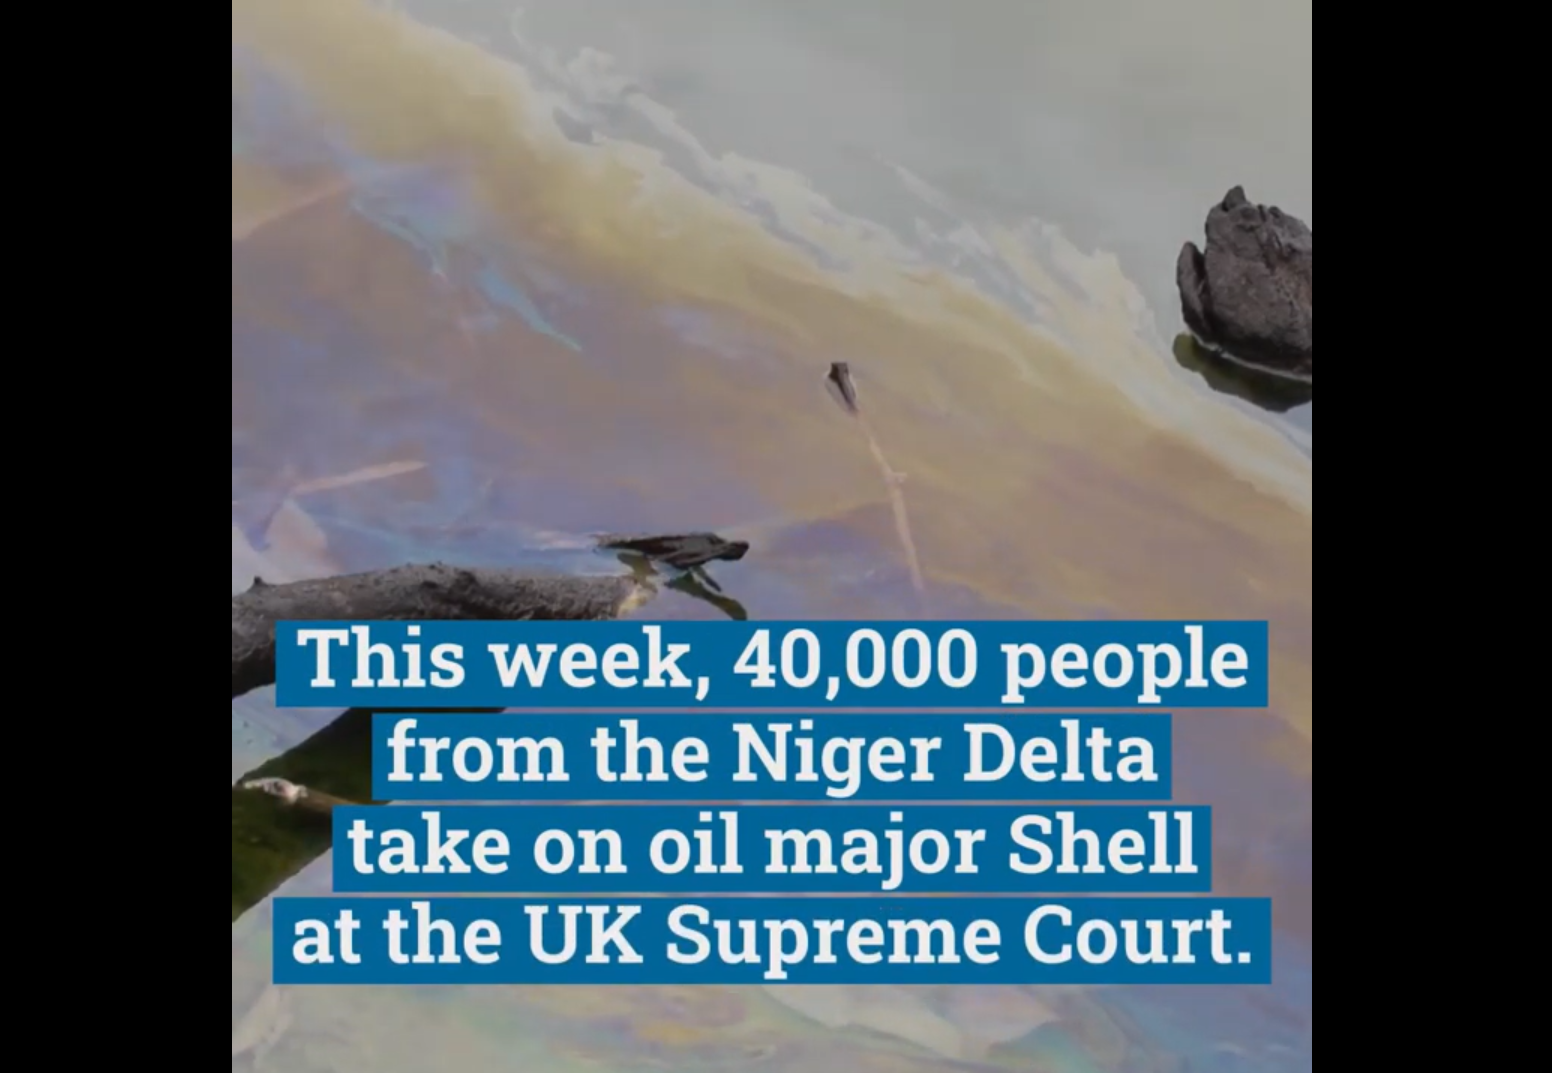 40,000 people from the Niger Delta take on Shell at the UK Supreme Court